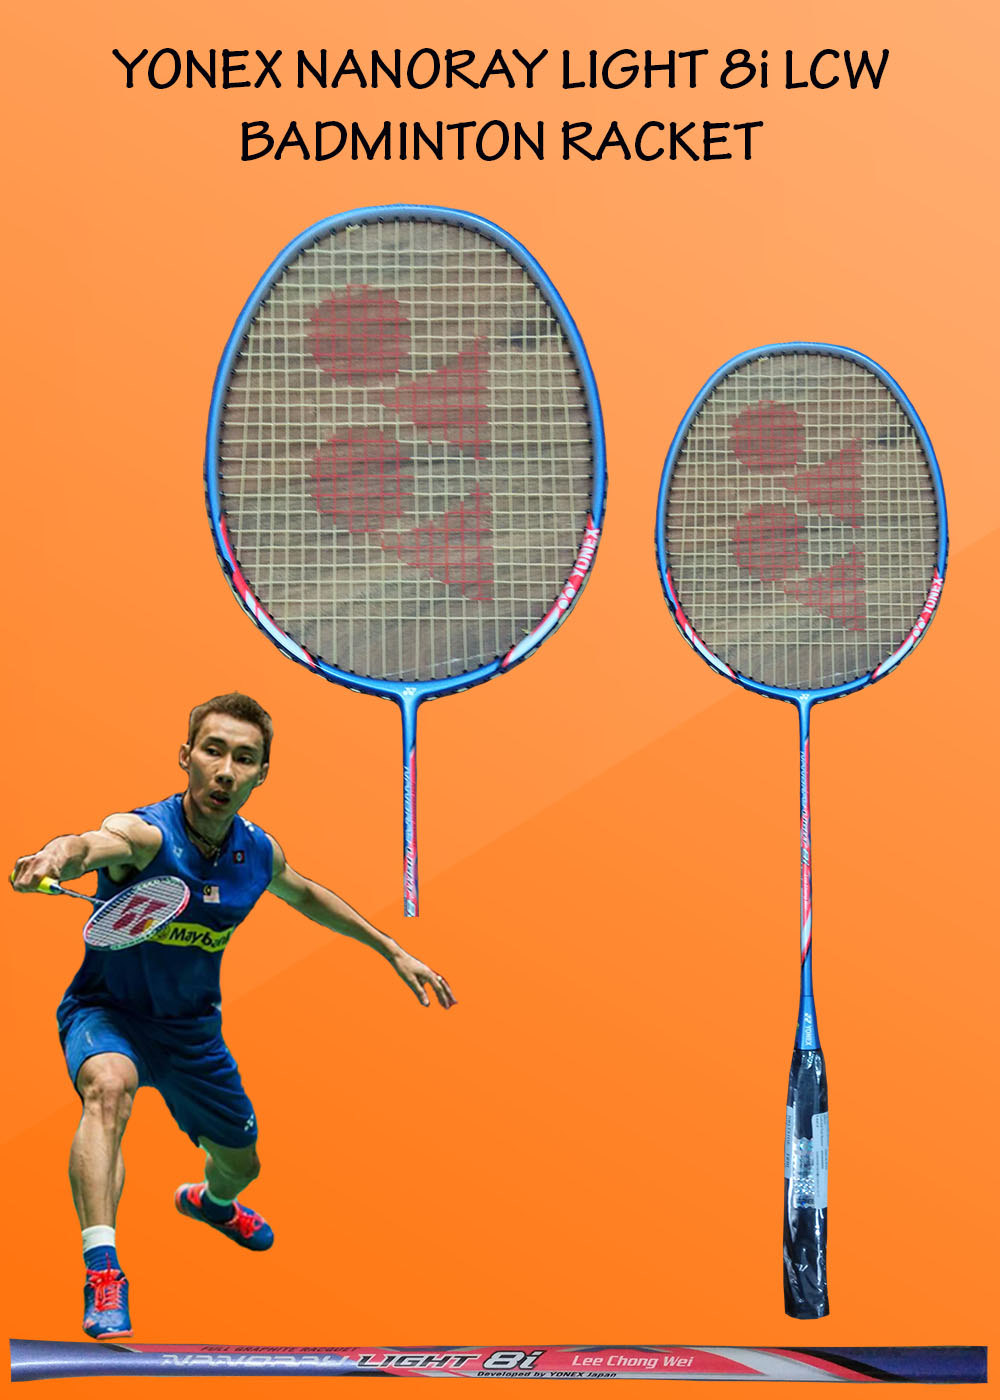 Yonex Nanoray Light 8i LCW Badminton Racket